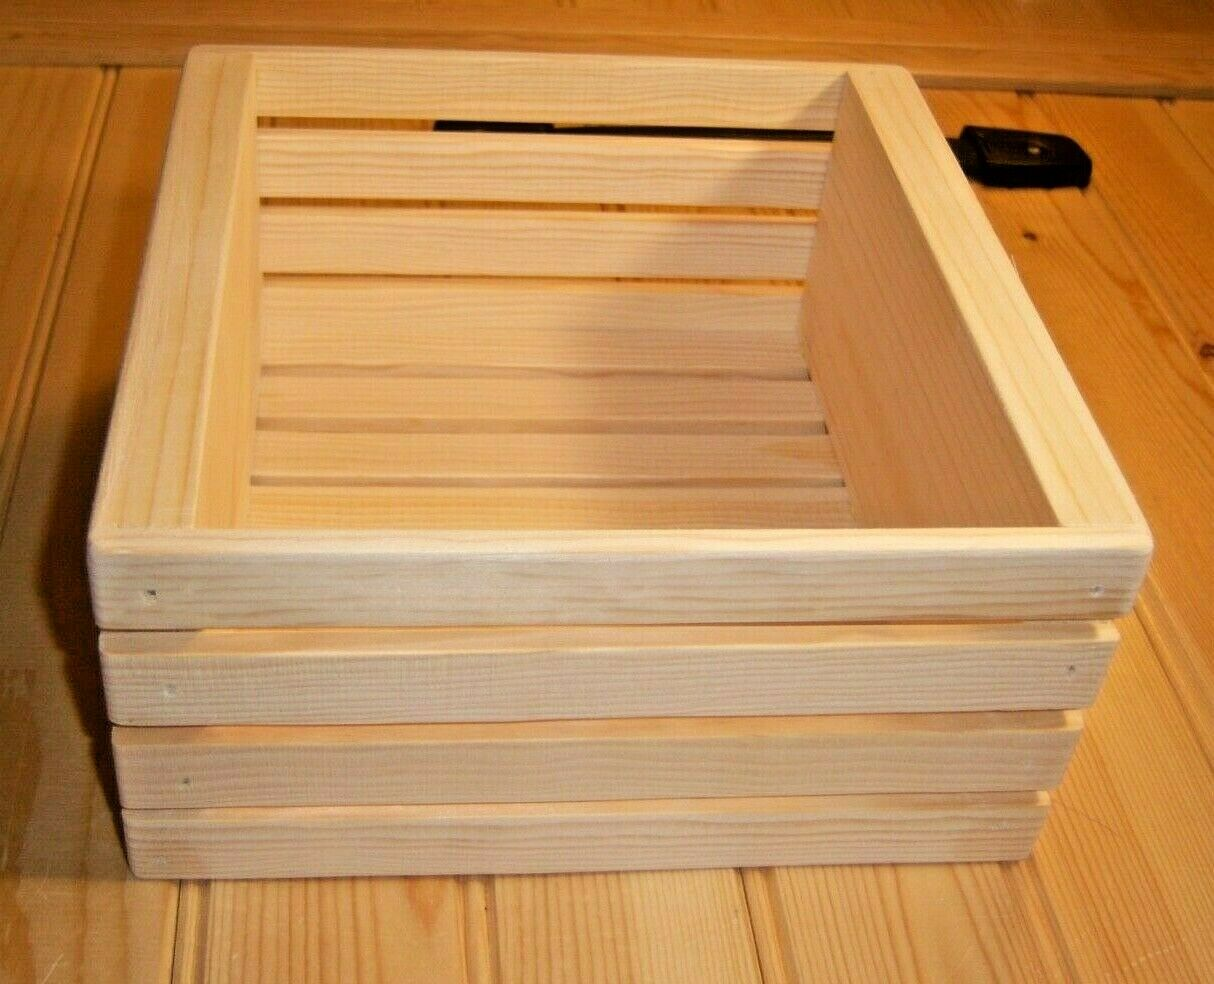 """Handmade Wooden Crate 8"""" Long X 8 1/4"""" Wide X 3 3/4"""" High Gift Box, Storage"""